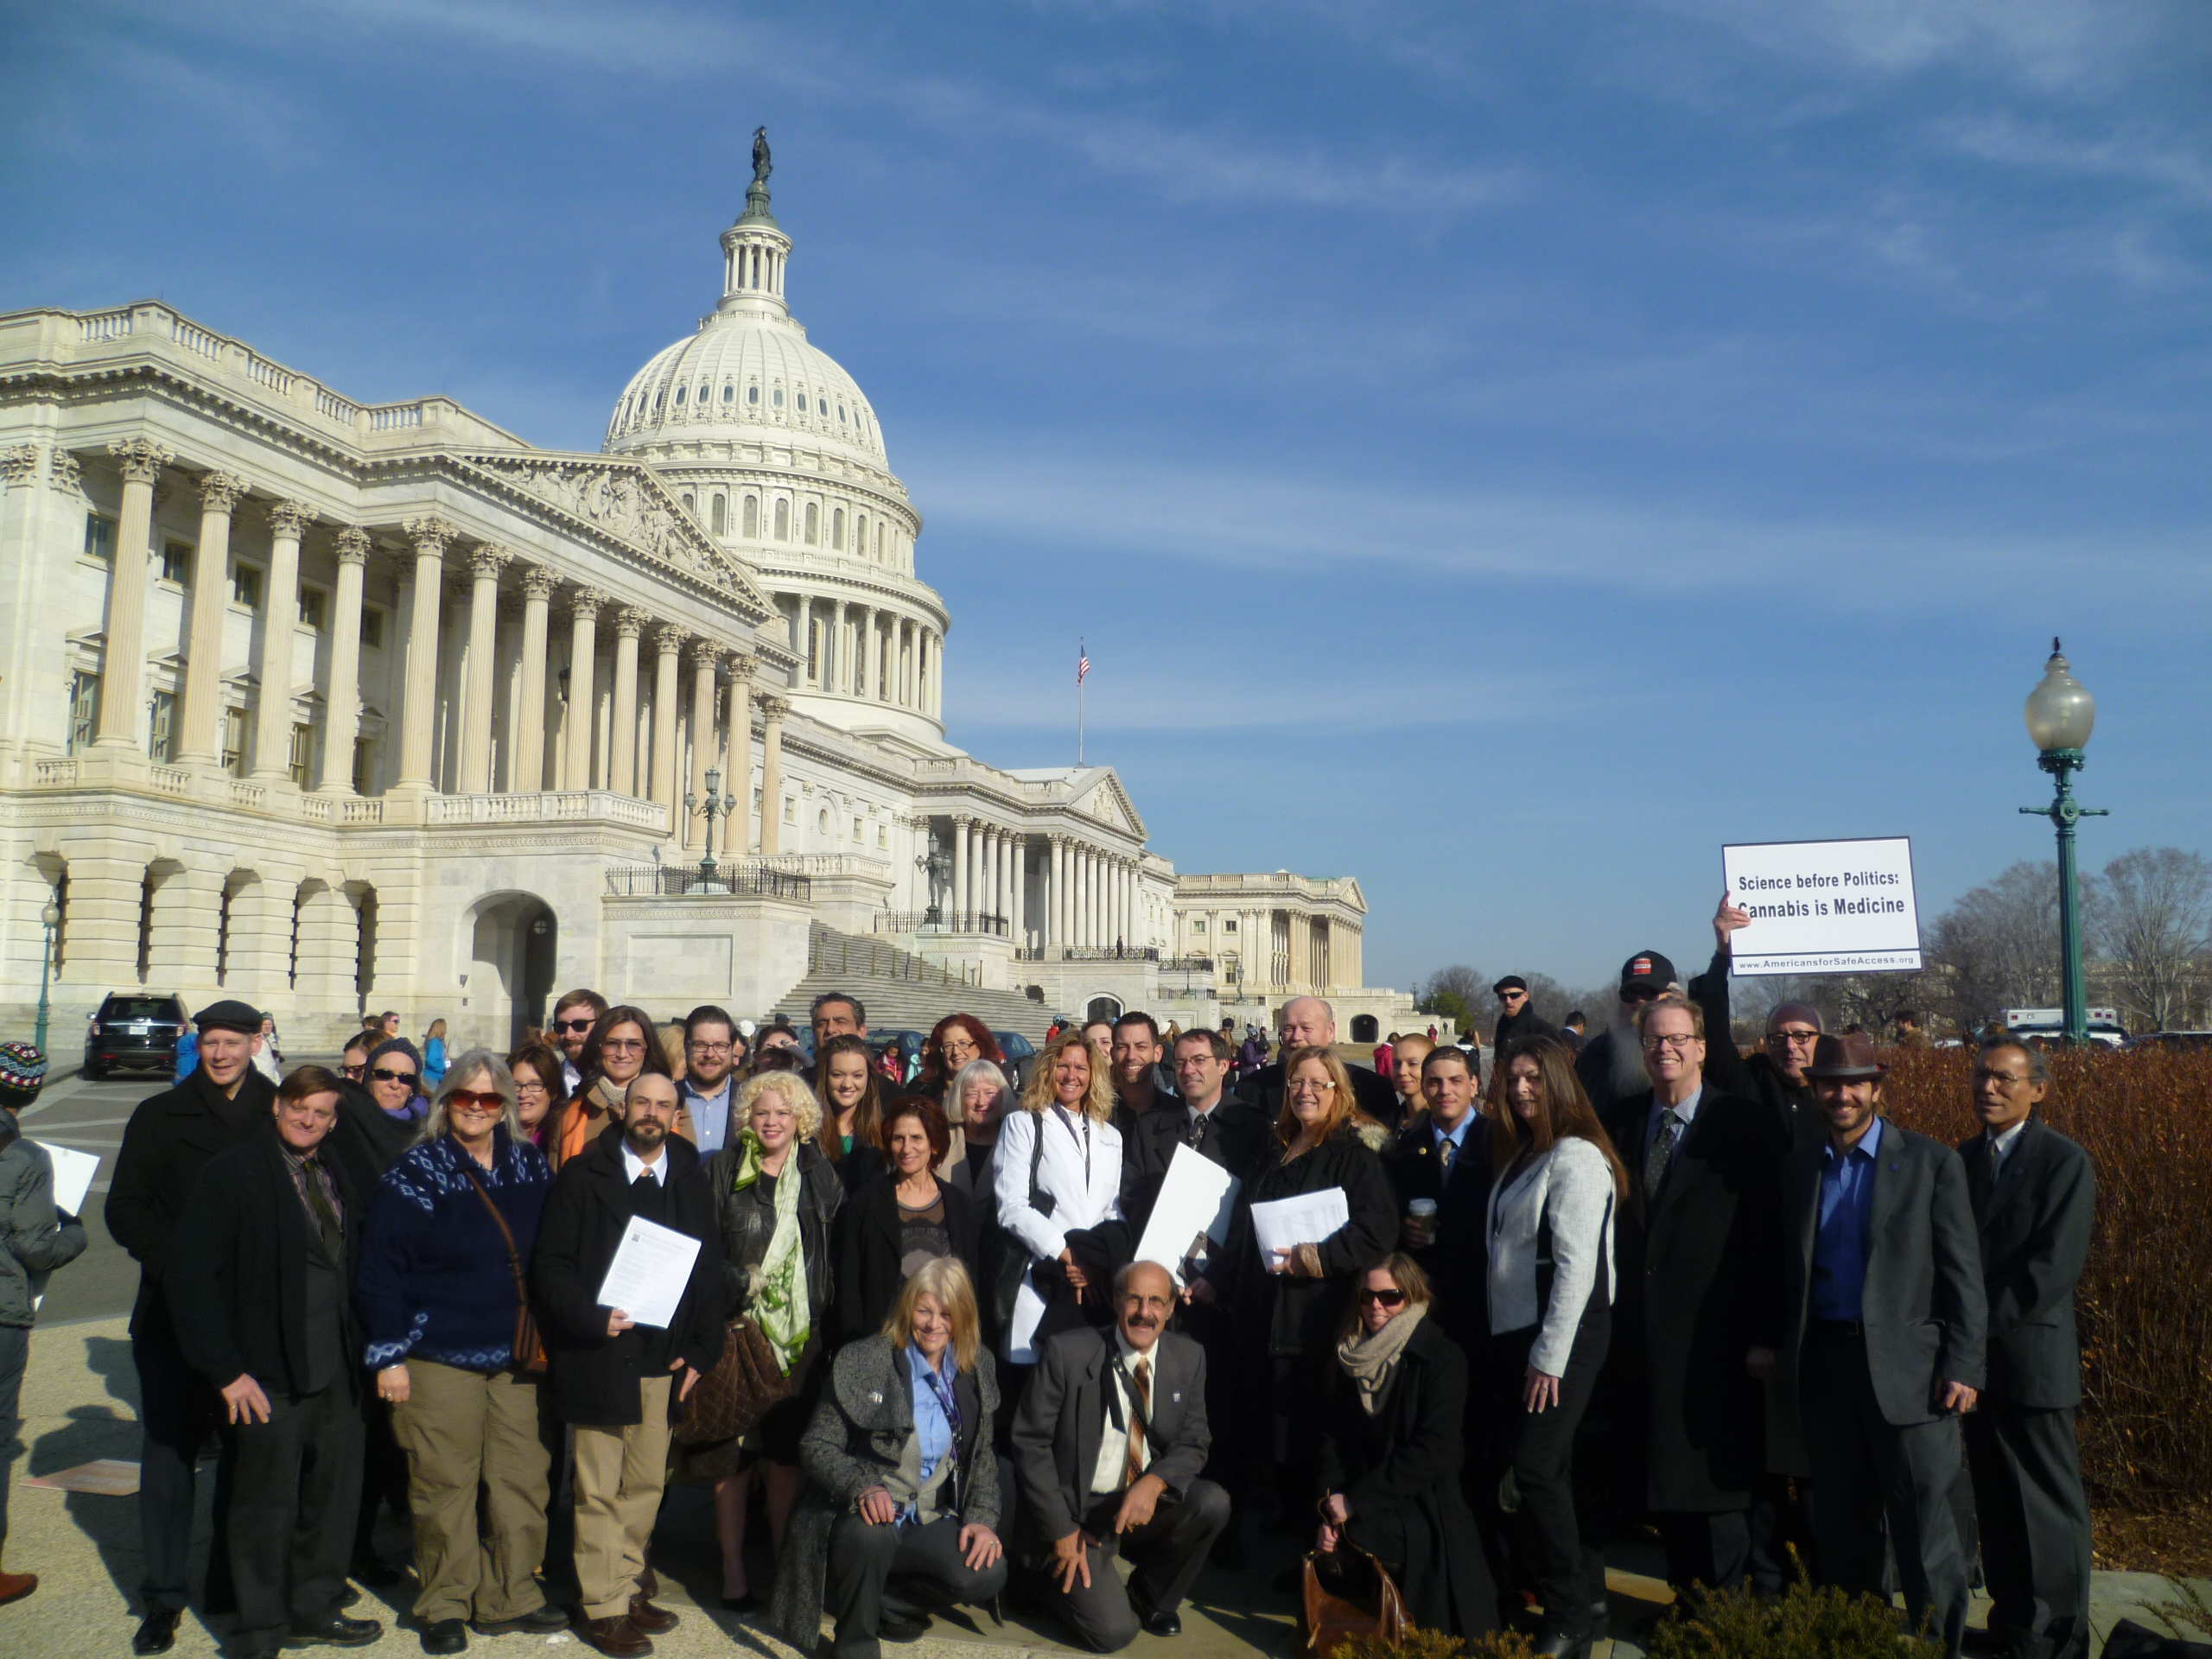 Nat._Unity_Conv_-_group_shot_at_capital_(2).jpg